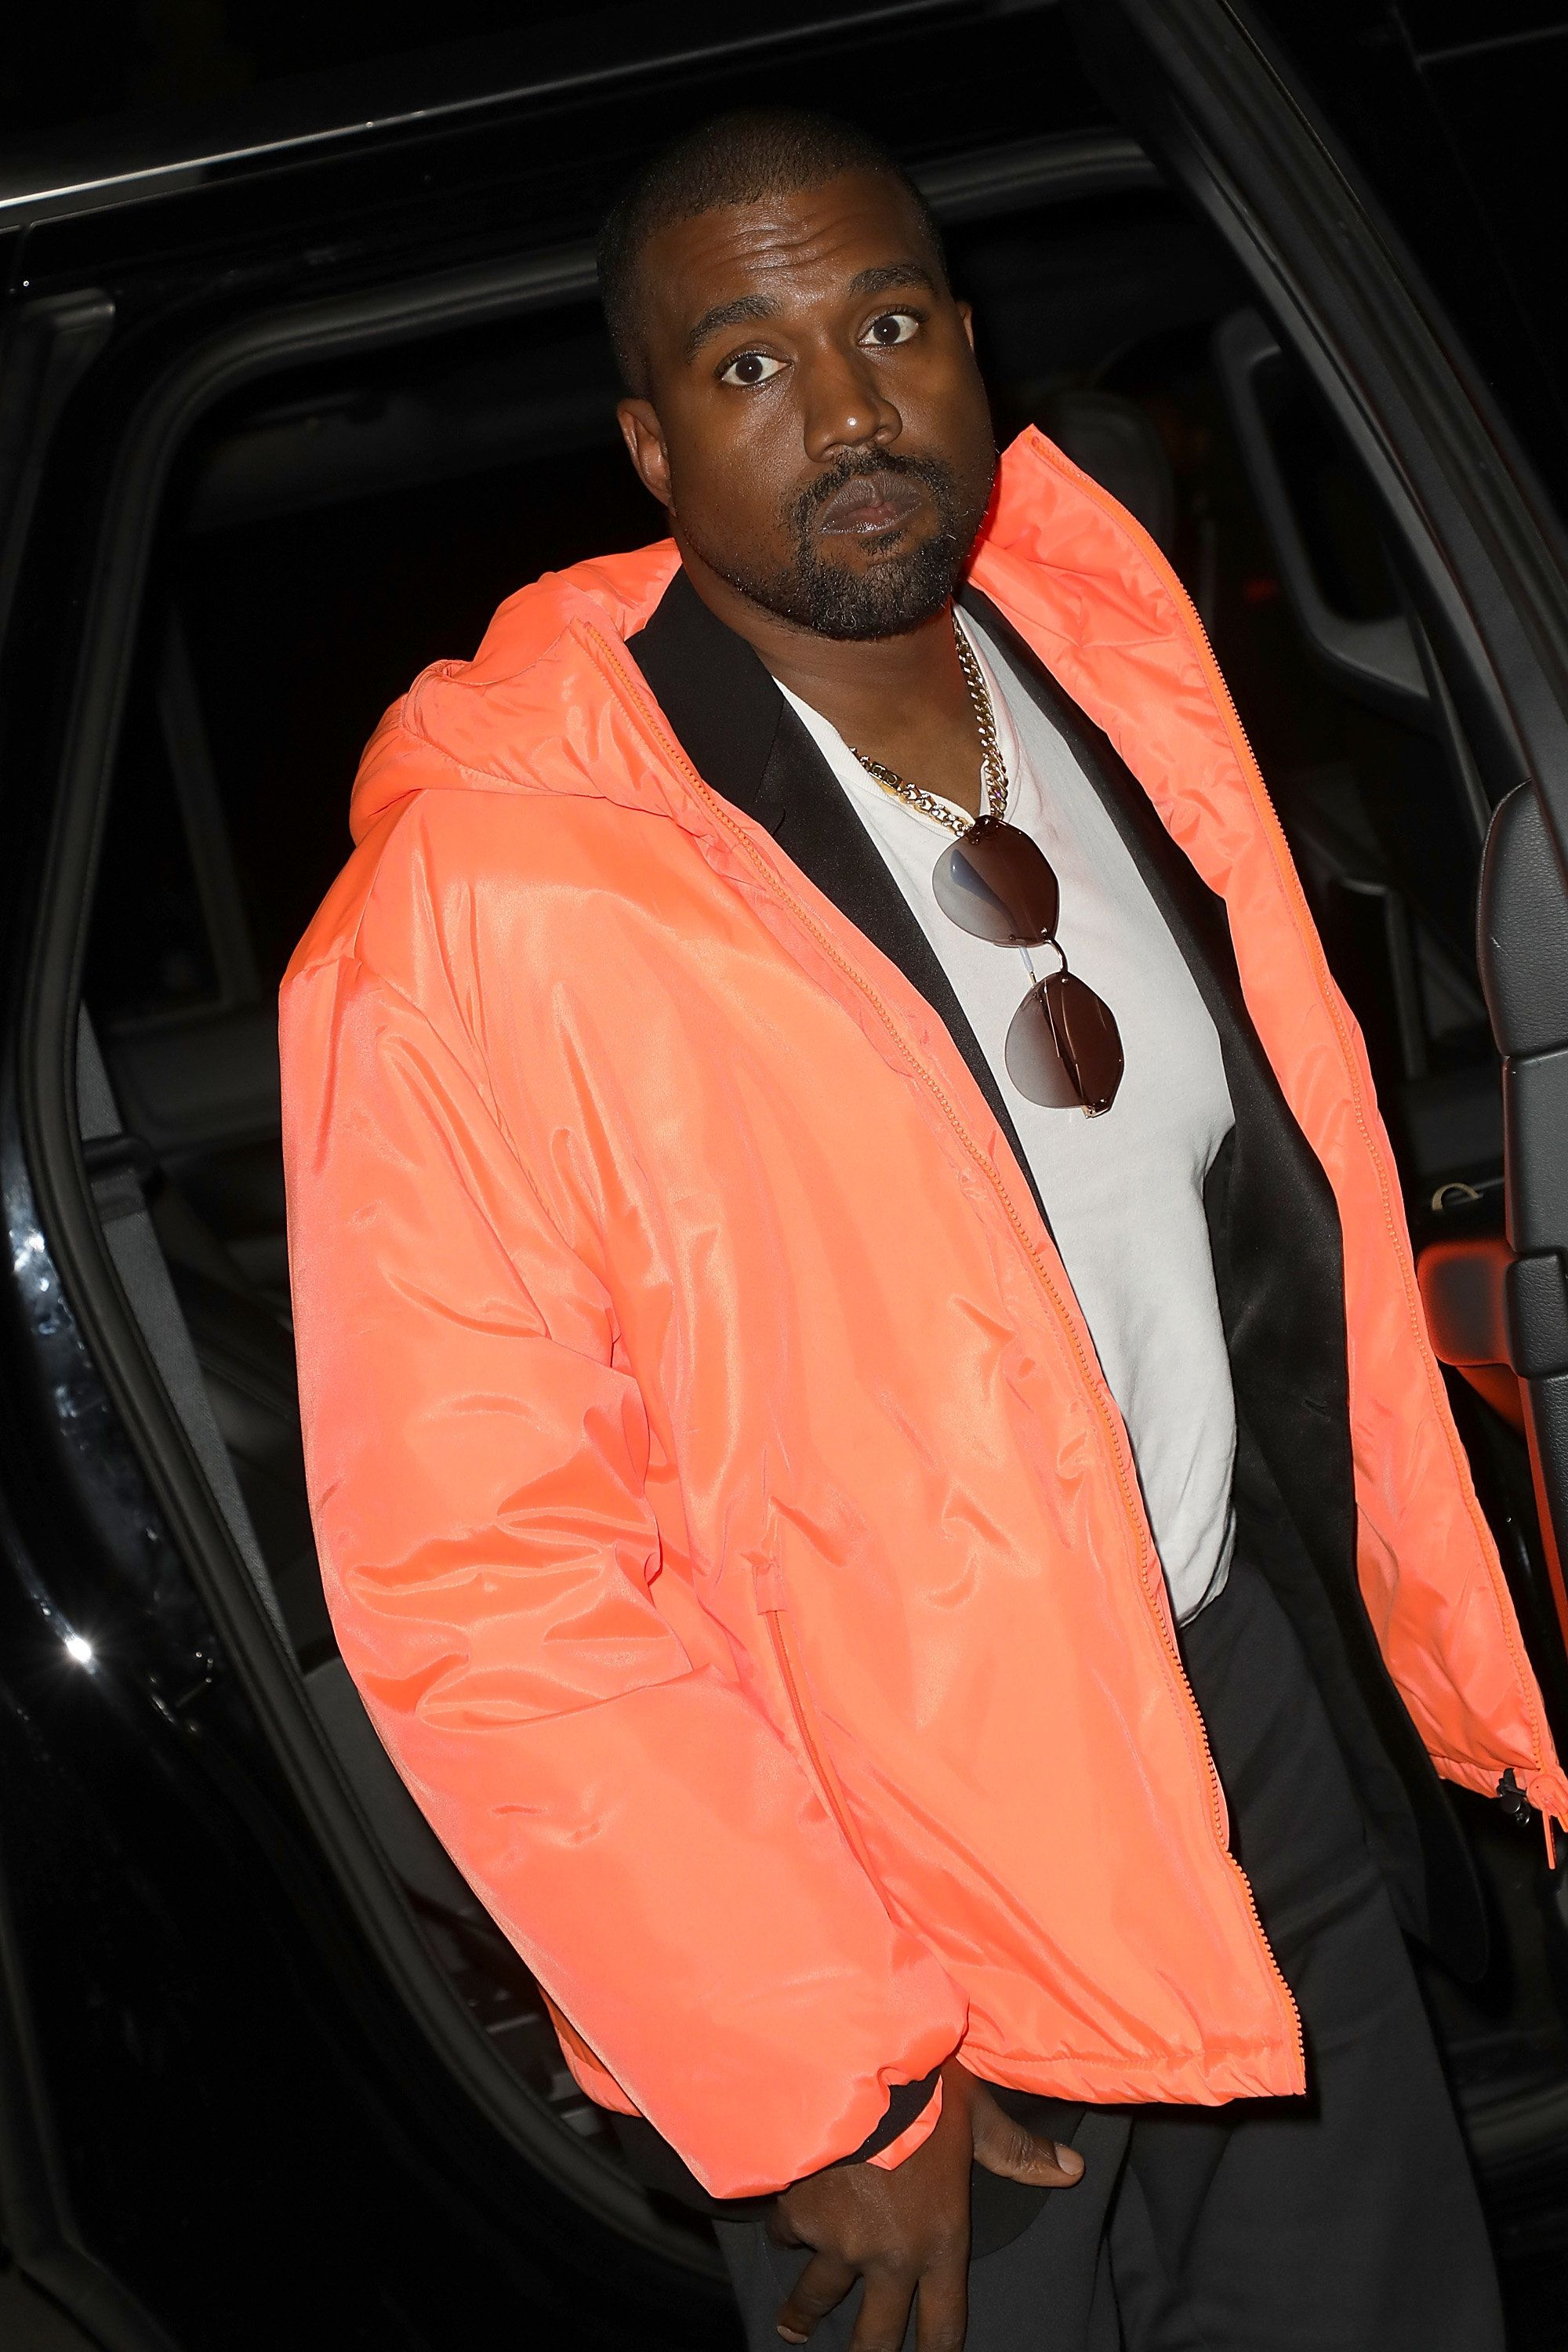 Kanye West Sets The Record Straight Over Tweets About 'Abolishing' 13th